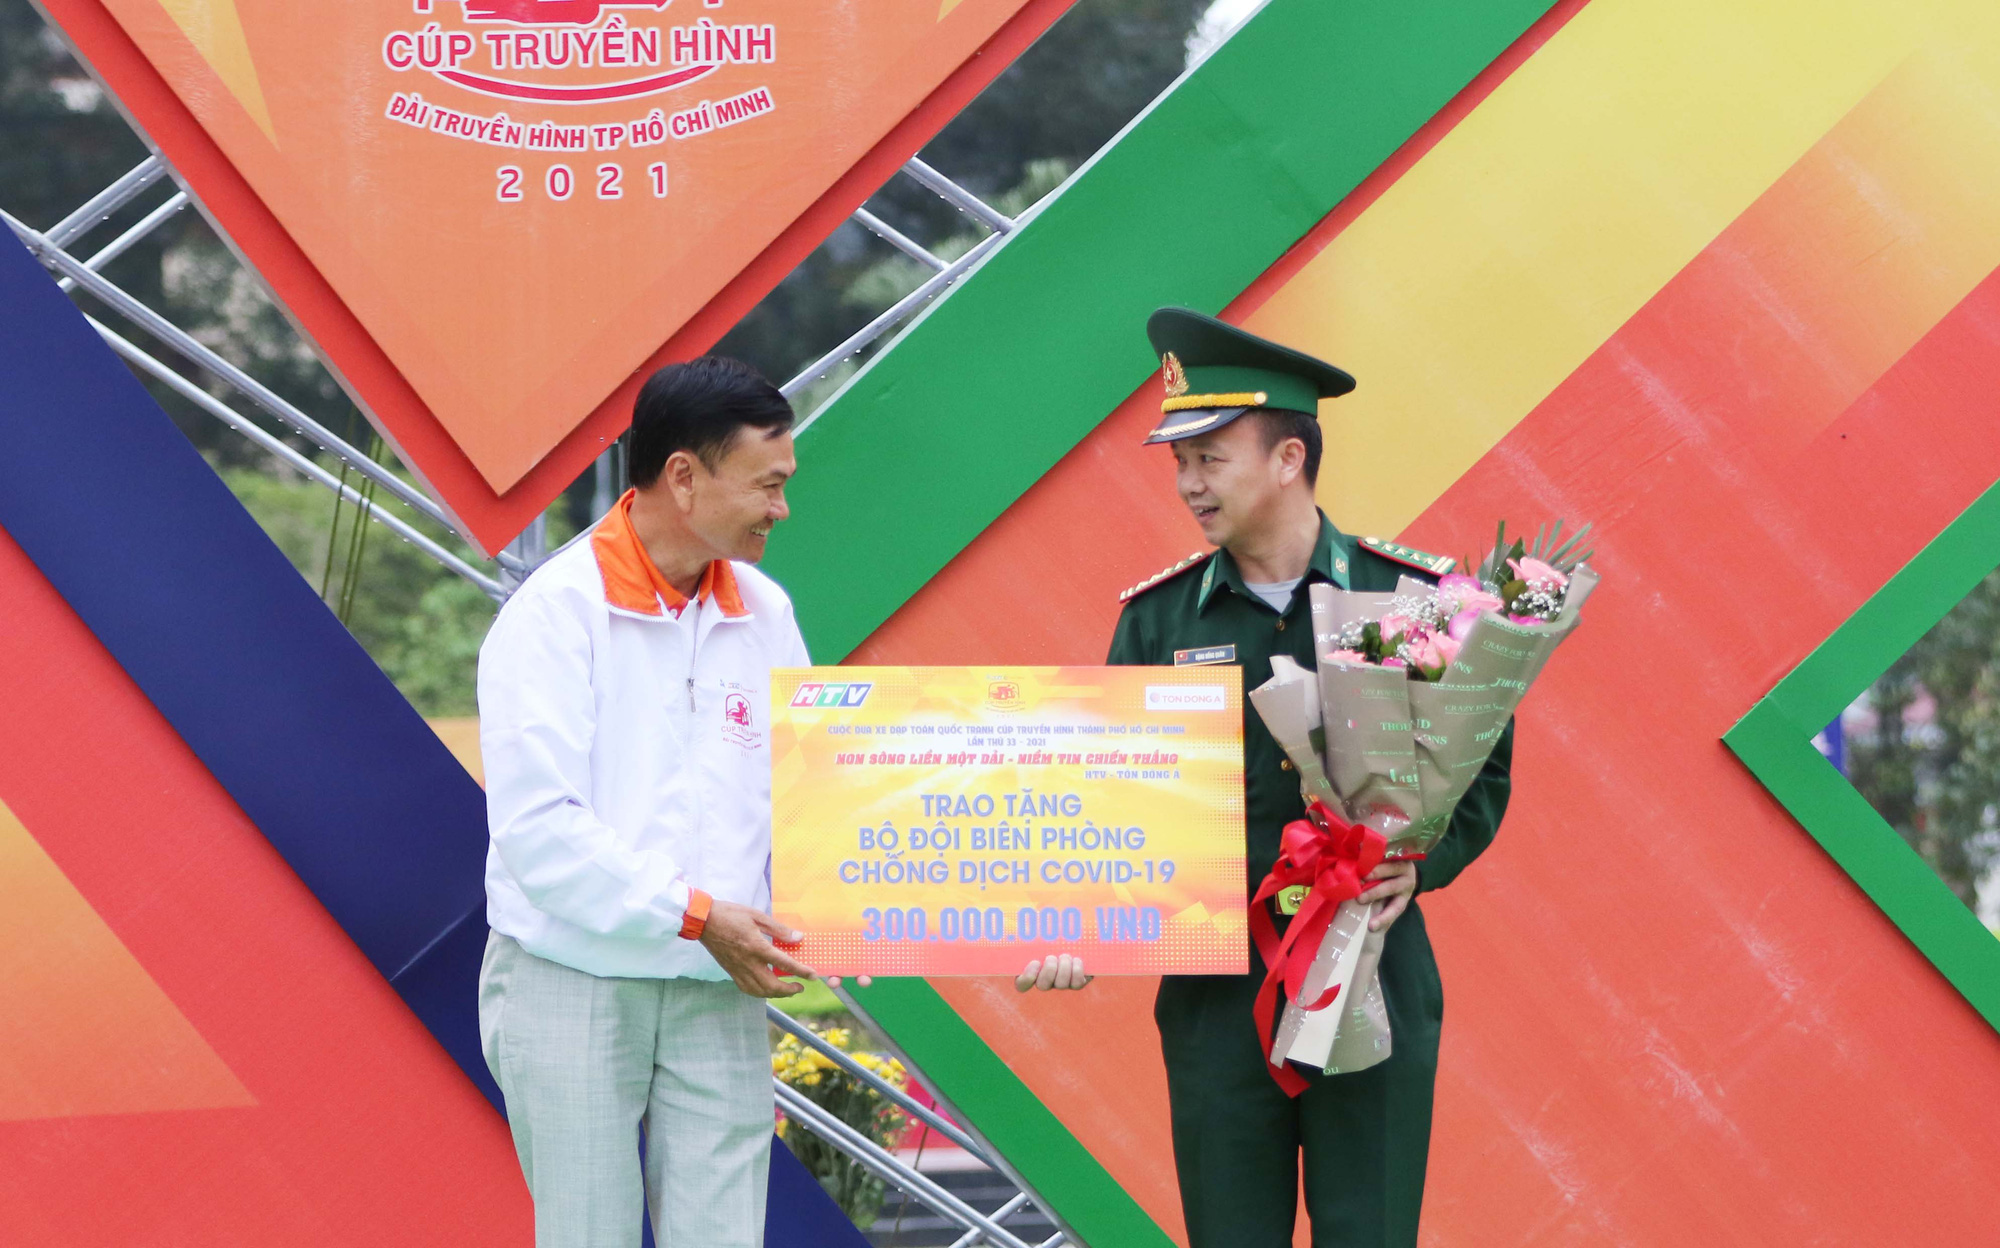 A representative of Ton Dong A Corporation (left) hands over the symbolic board of donation to a representative of the Border Guard Command of Cao Bang Province in the opening stage at the HTV Cup national cycling tournament in Cao Bang Province, Vietnam, April 6, 2021. Photo: T.P. / Tuoi Tre